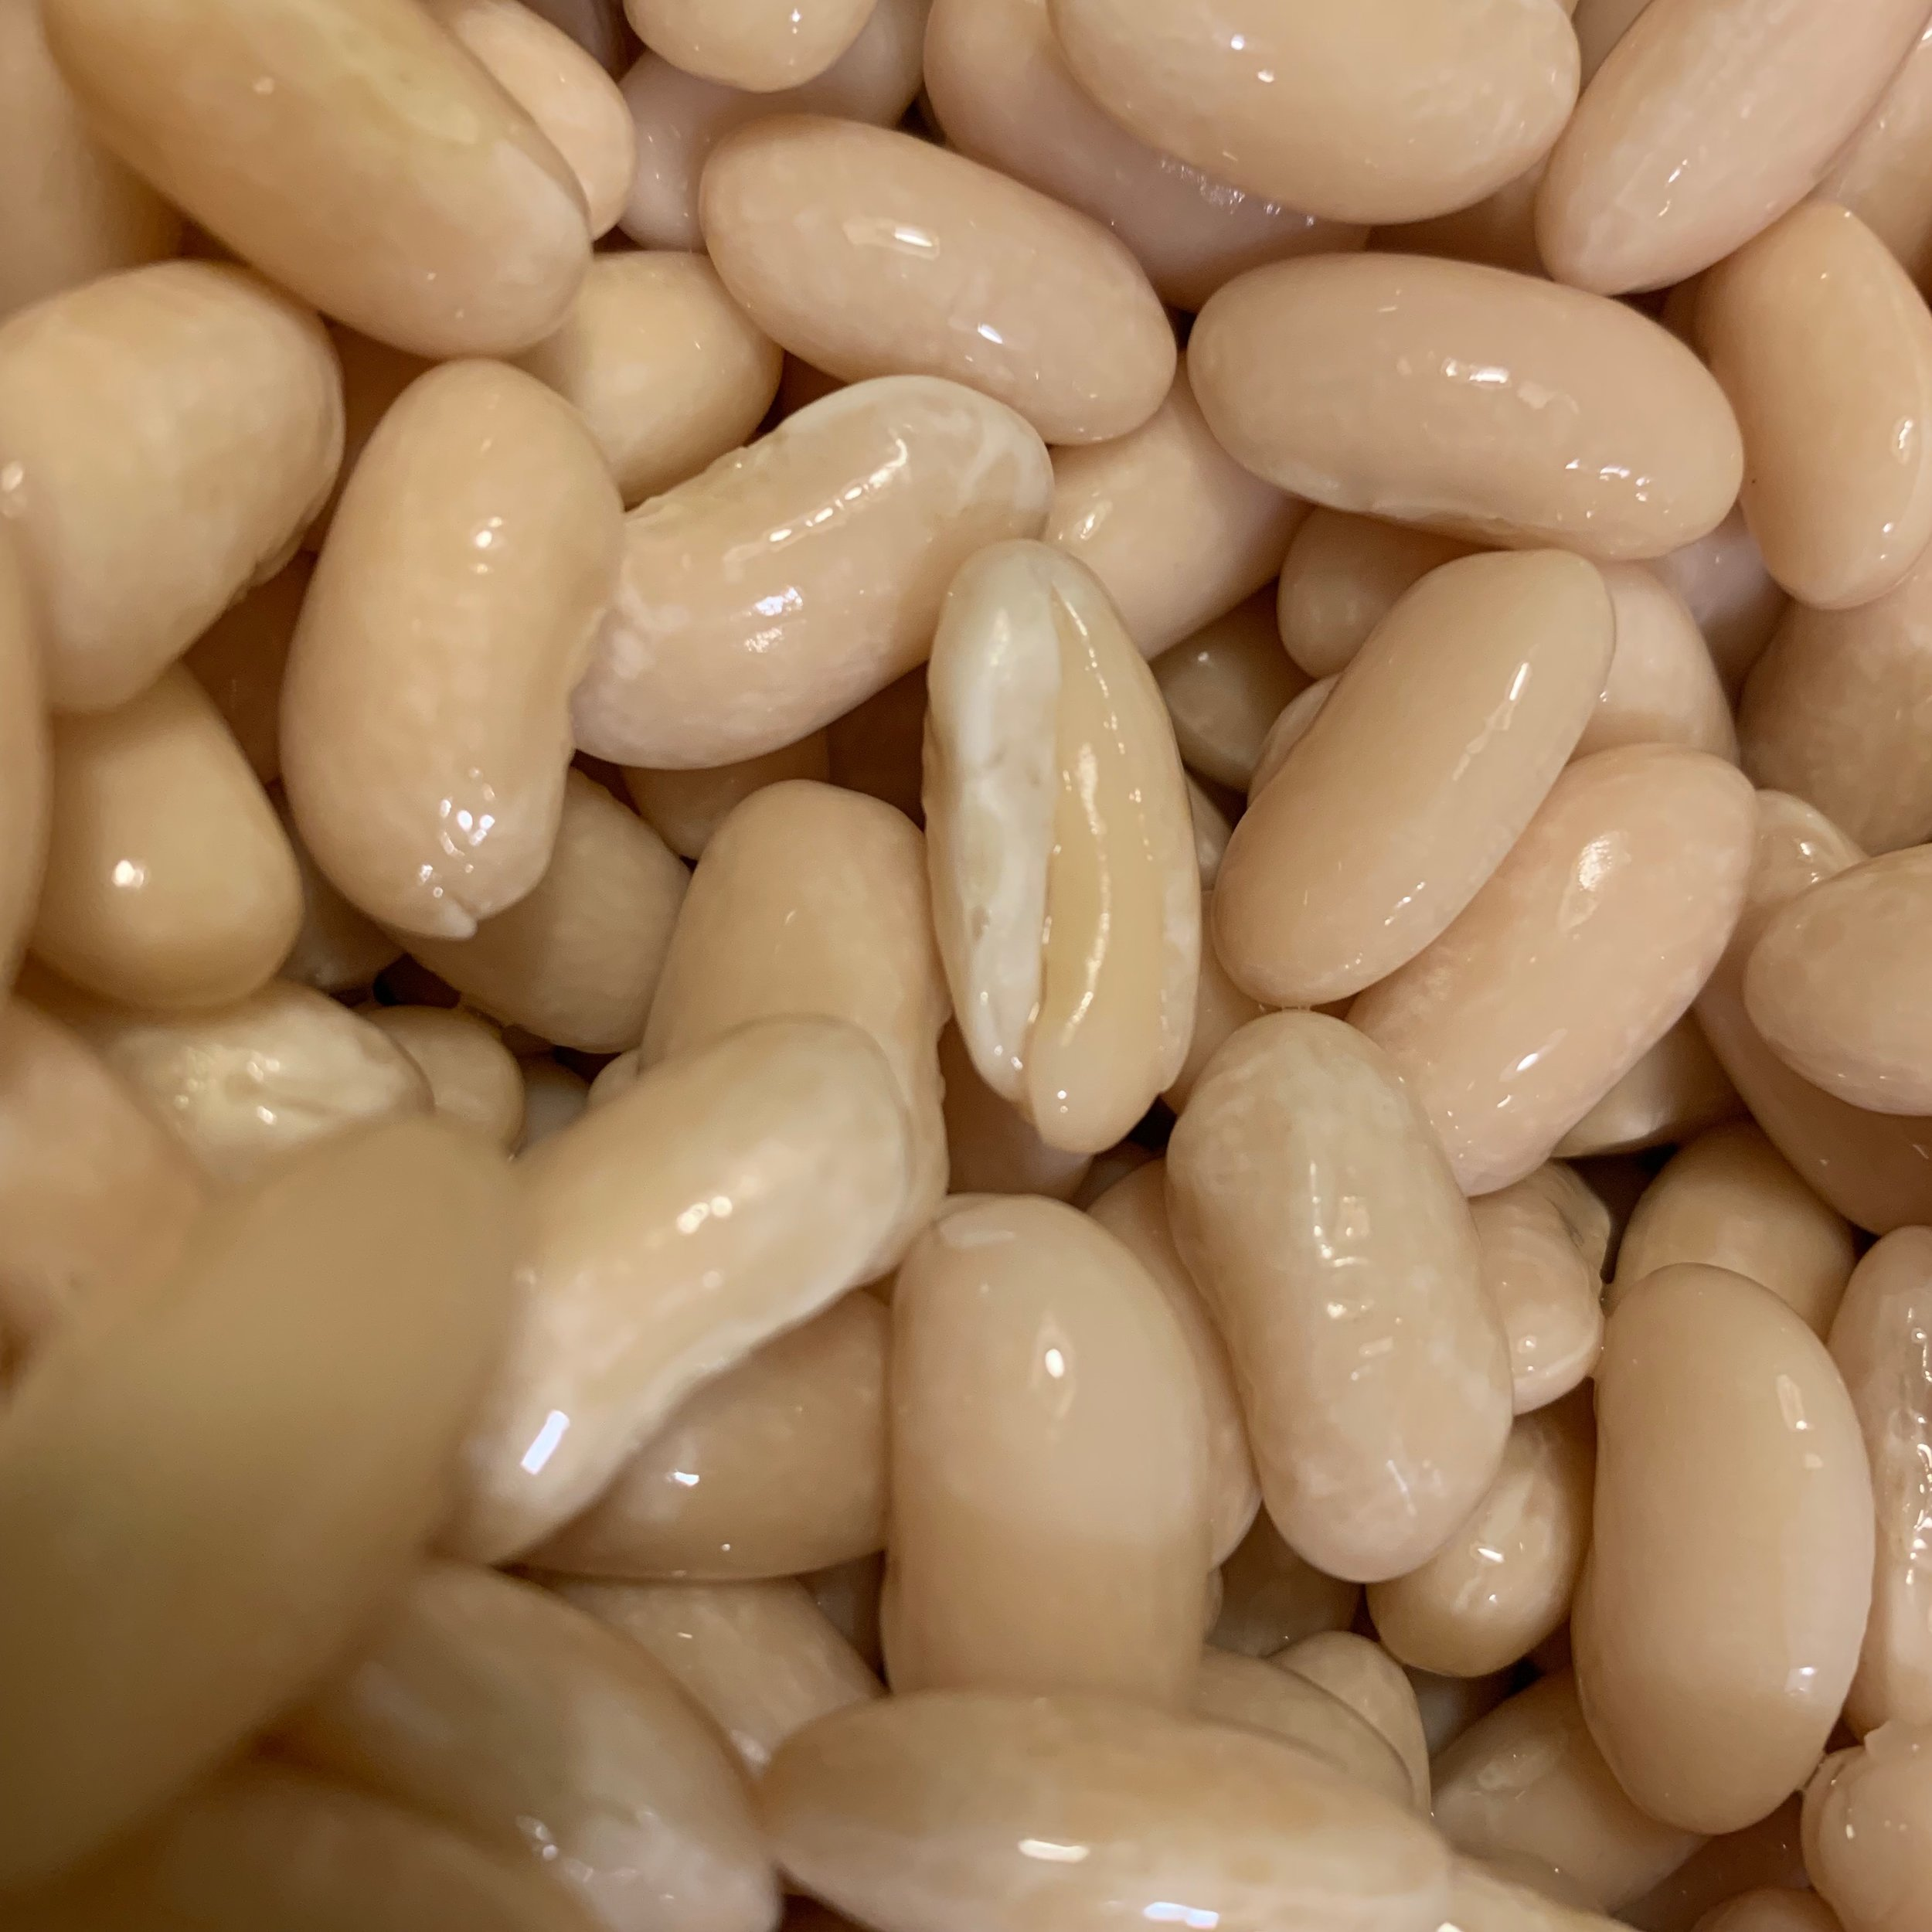 soak your beans in warm water with baking soda and see if you can get them to sprout